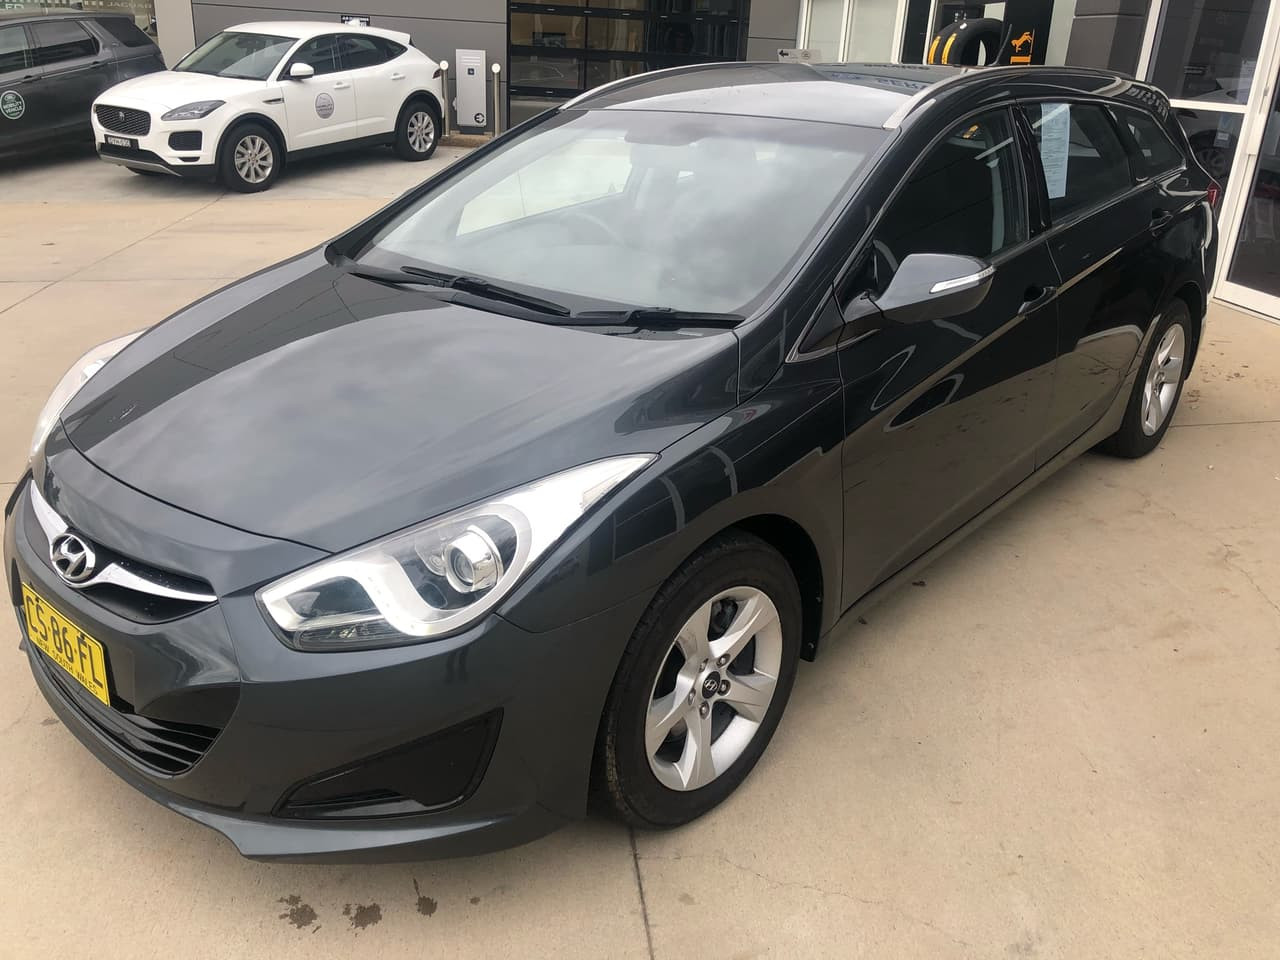 2011 Hyundai I40 VF ACTIVE Wagon